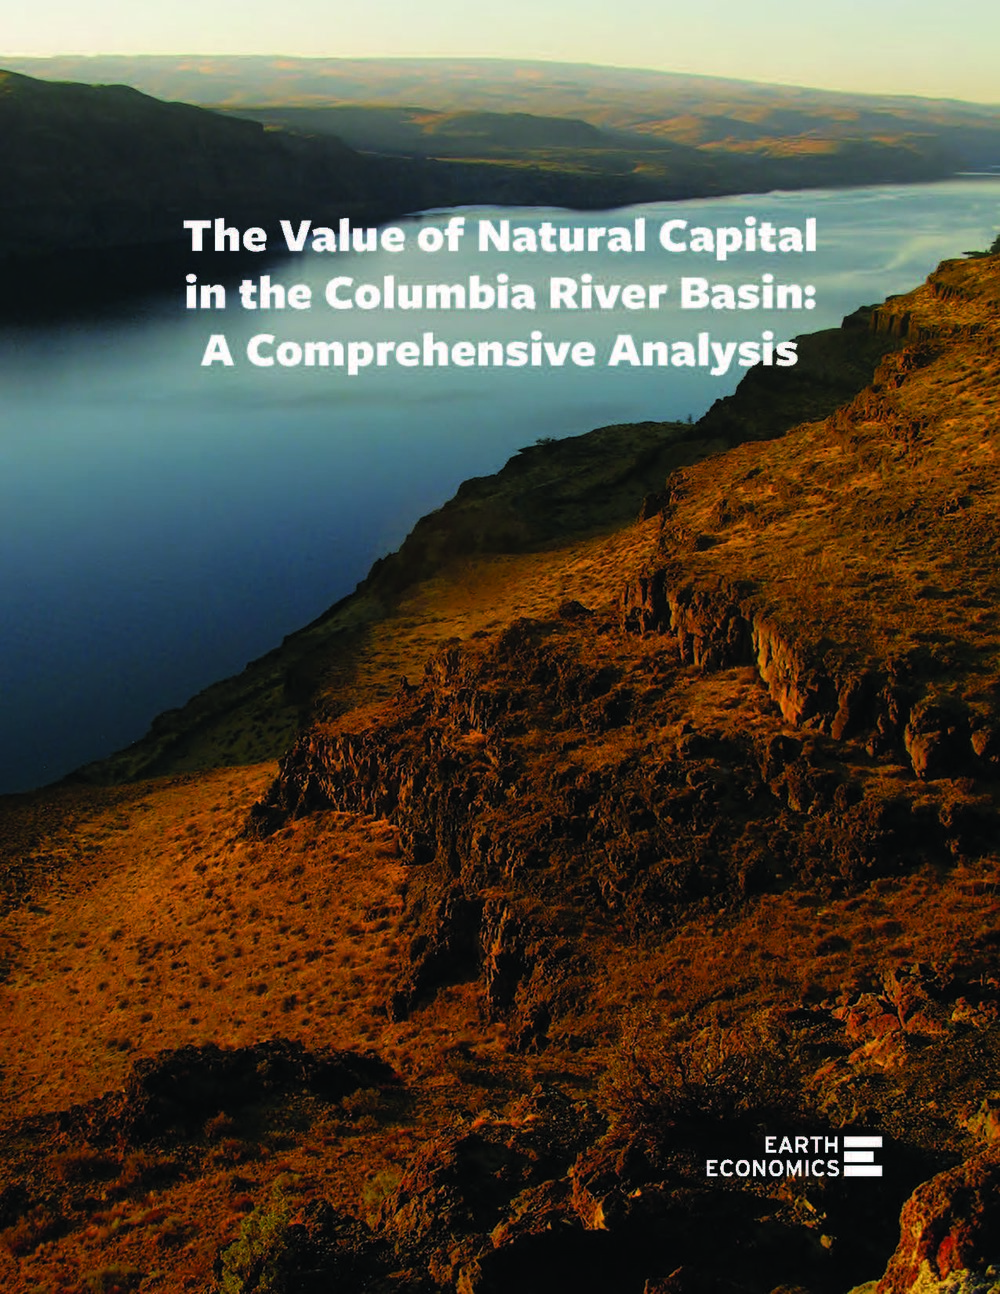 Cover_ValueofNaturalCapitalintheColumbiaRiverBasin_EarthEconomics_Jan2018.jpg